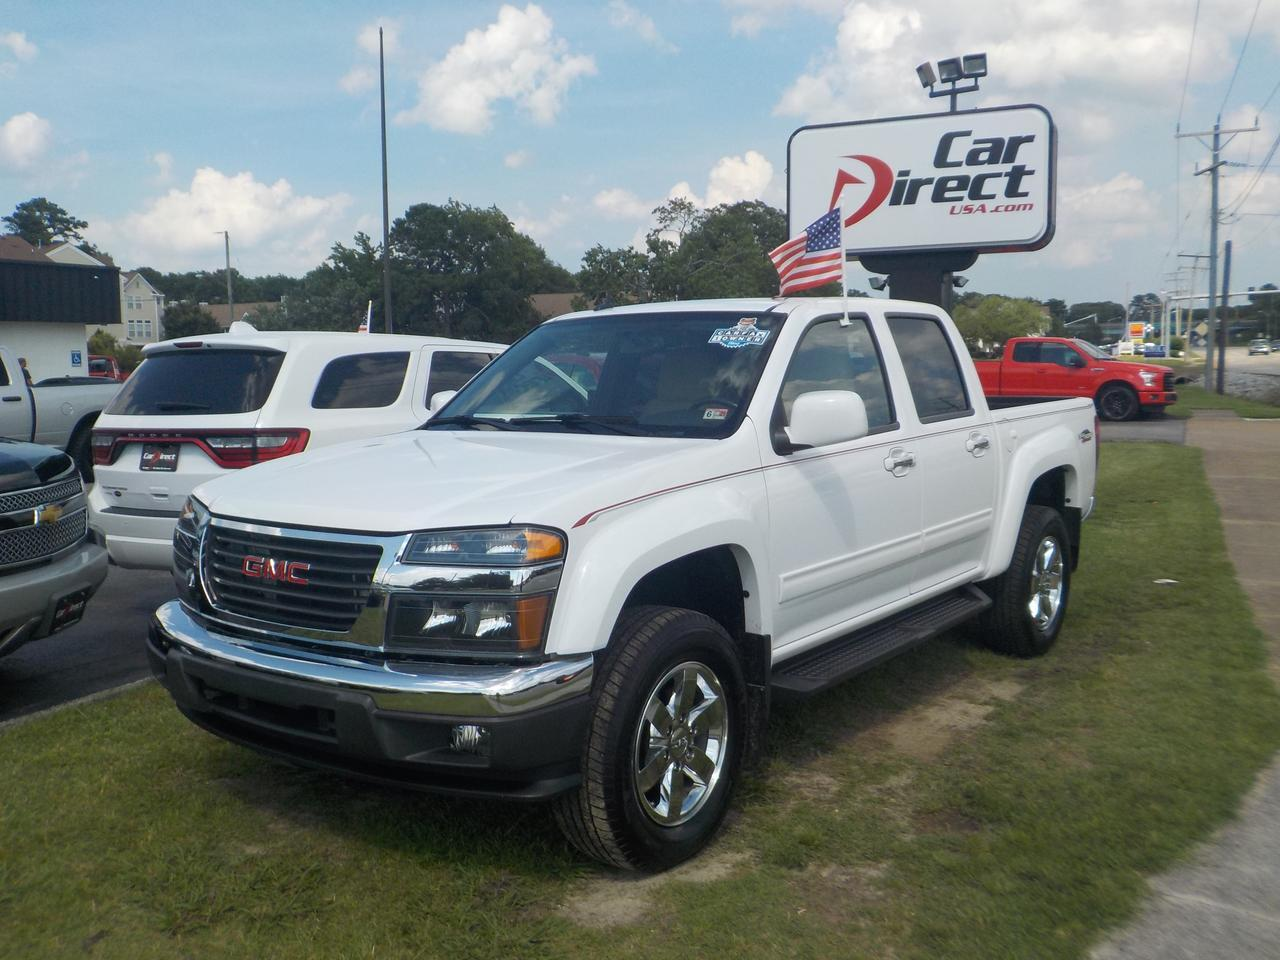 2012 GMC CANYON SLE-2 CREW CAB 4X4, BED LINER, RUNNING BOARDS, ONSTAR, BLUETOOTH, FENDER FLARES, TINTED WINDOWS, TOW Virginia Beach VA